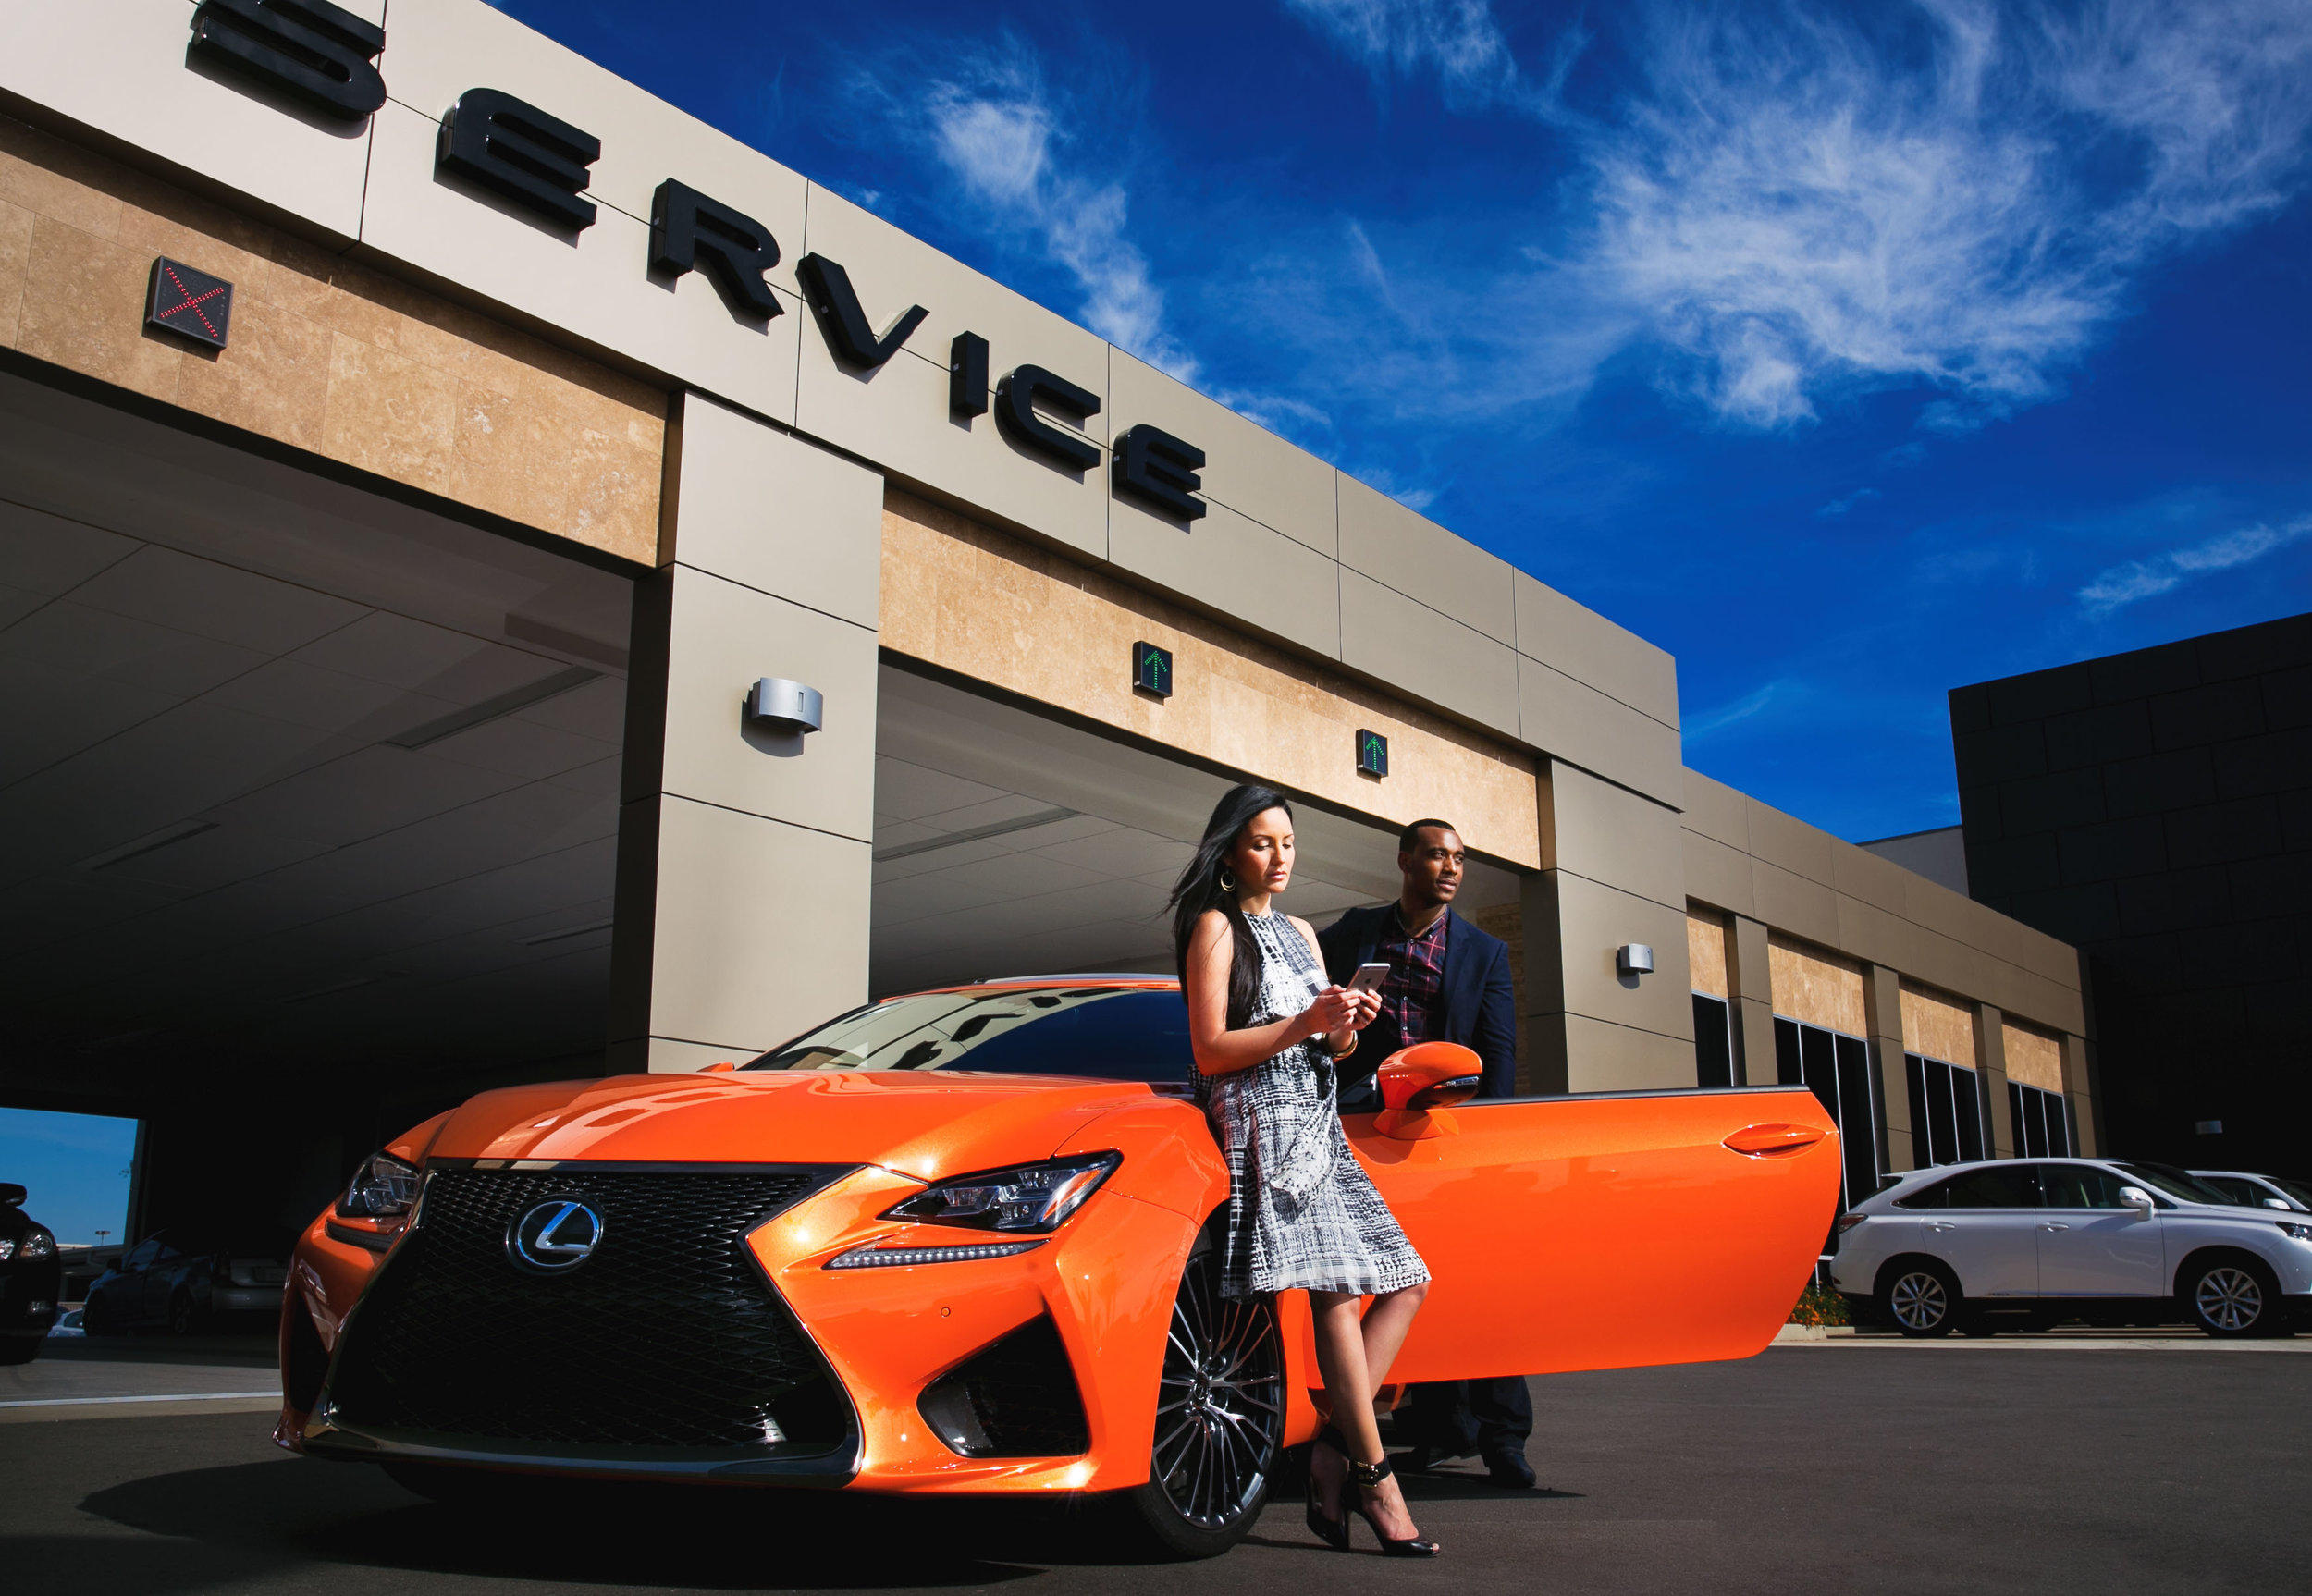 150429-Lexus-Pub-Cerritos-7325-Edit.jpg